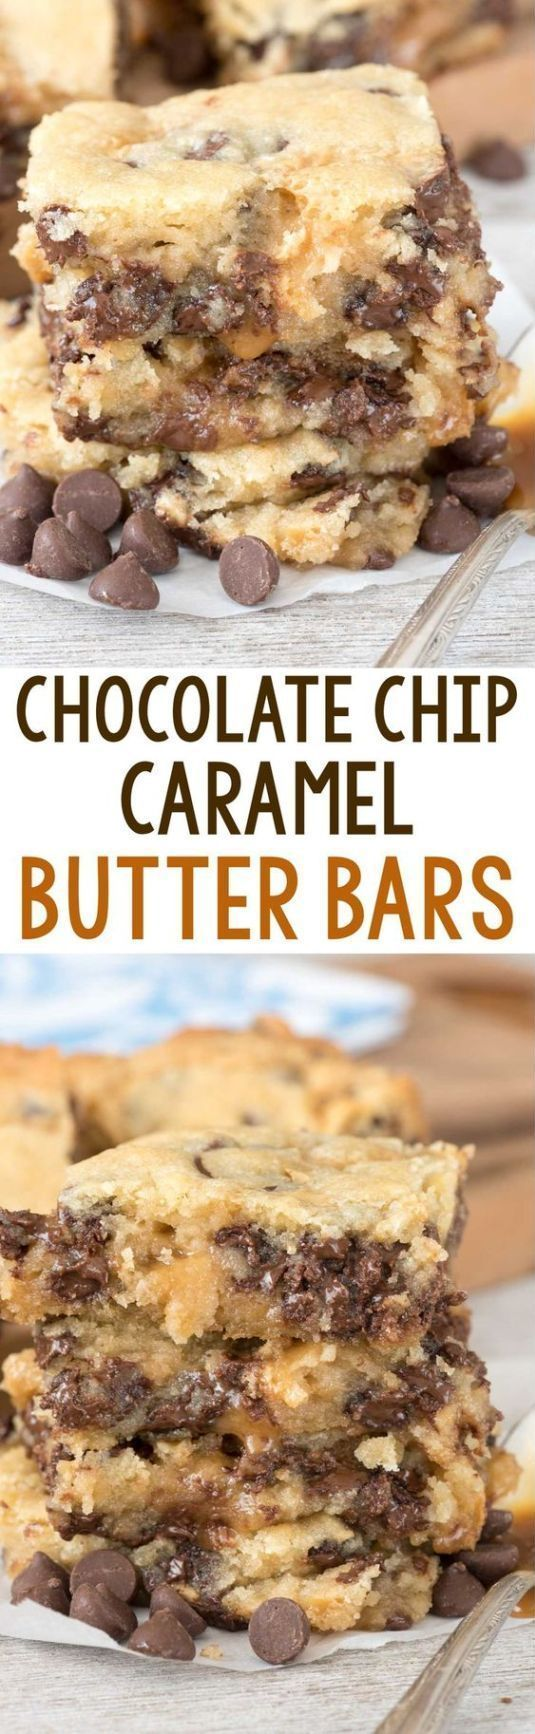 The Best Easy Desserts Bars Recipes – Favorite New Plus Classic Simple Bar Cookies and Quick Big Batch Party Treats Bars for a Crowd – Dreaming in DIY